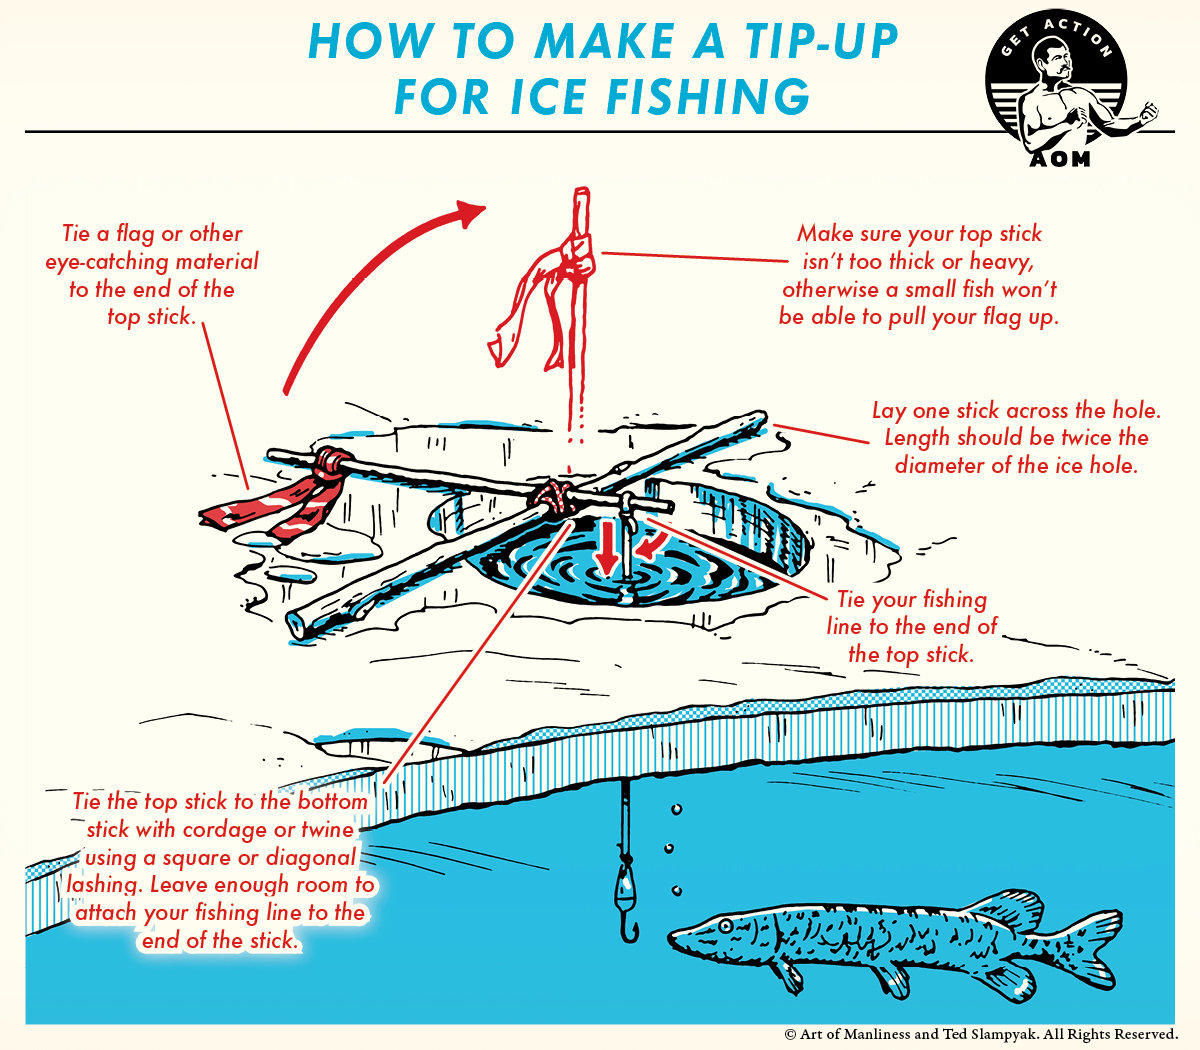 Comic guide to make tip-up for ice fishing.